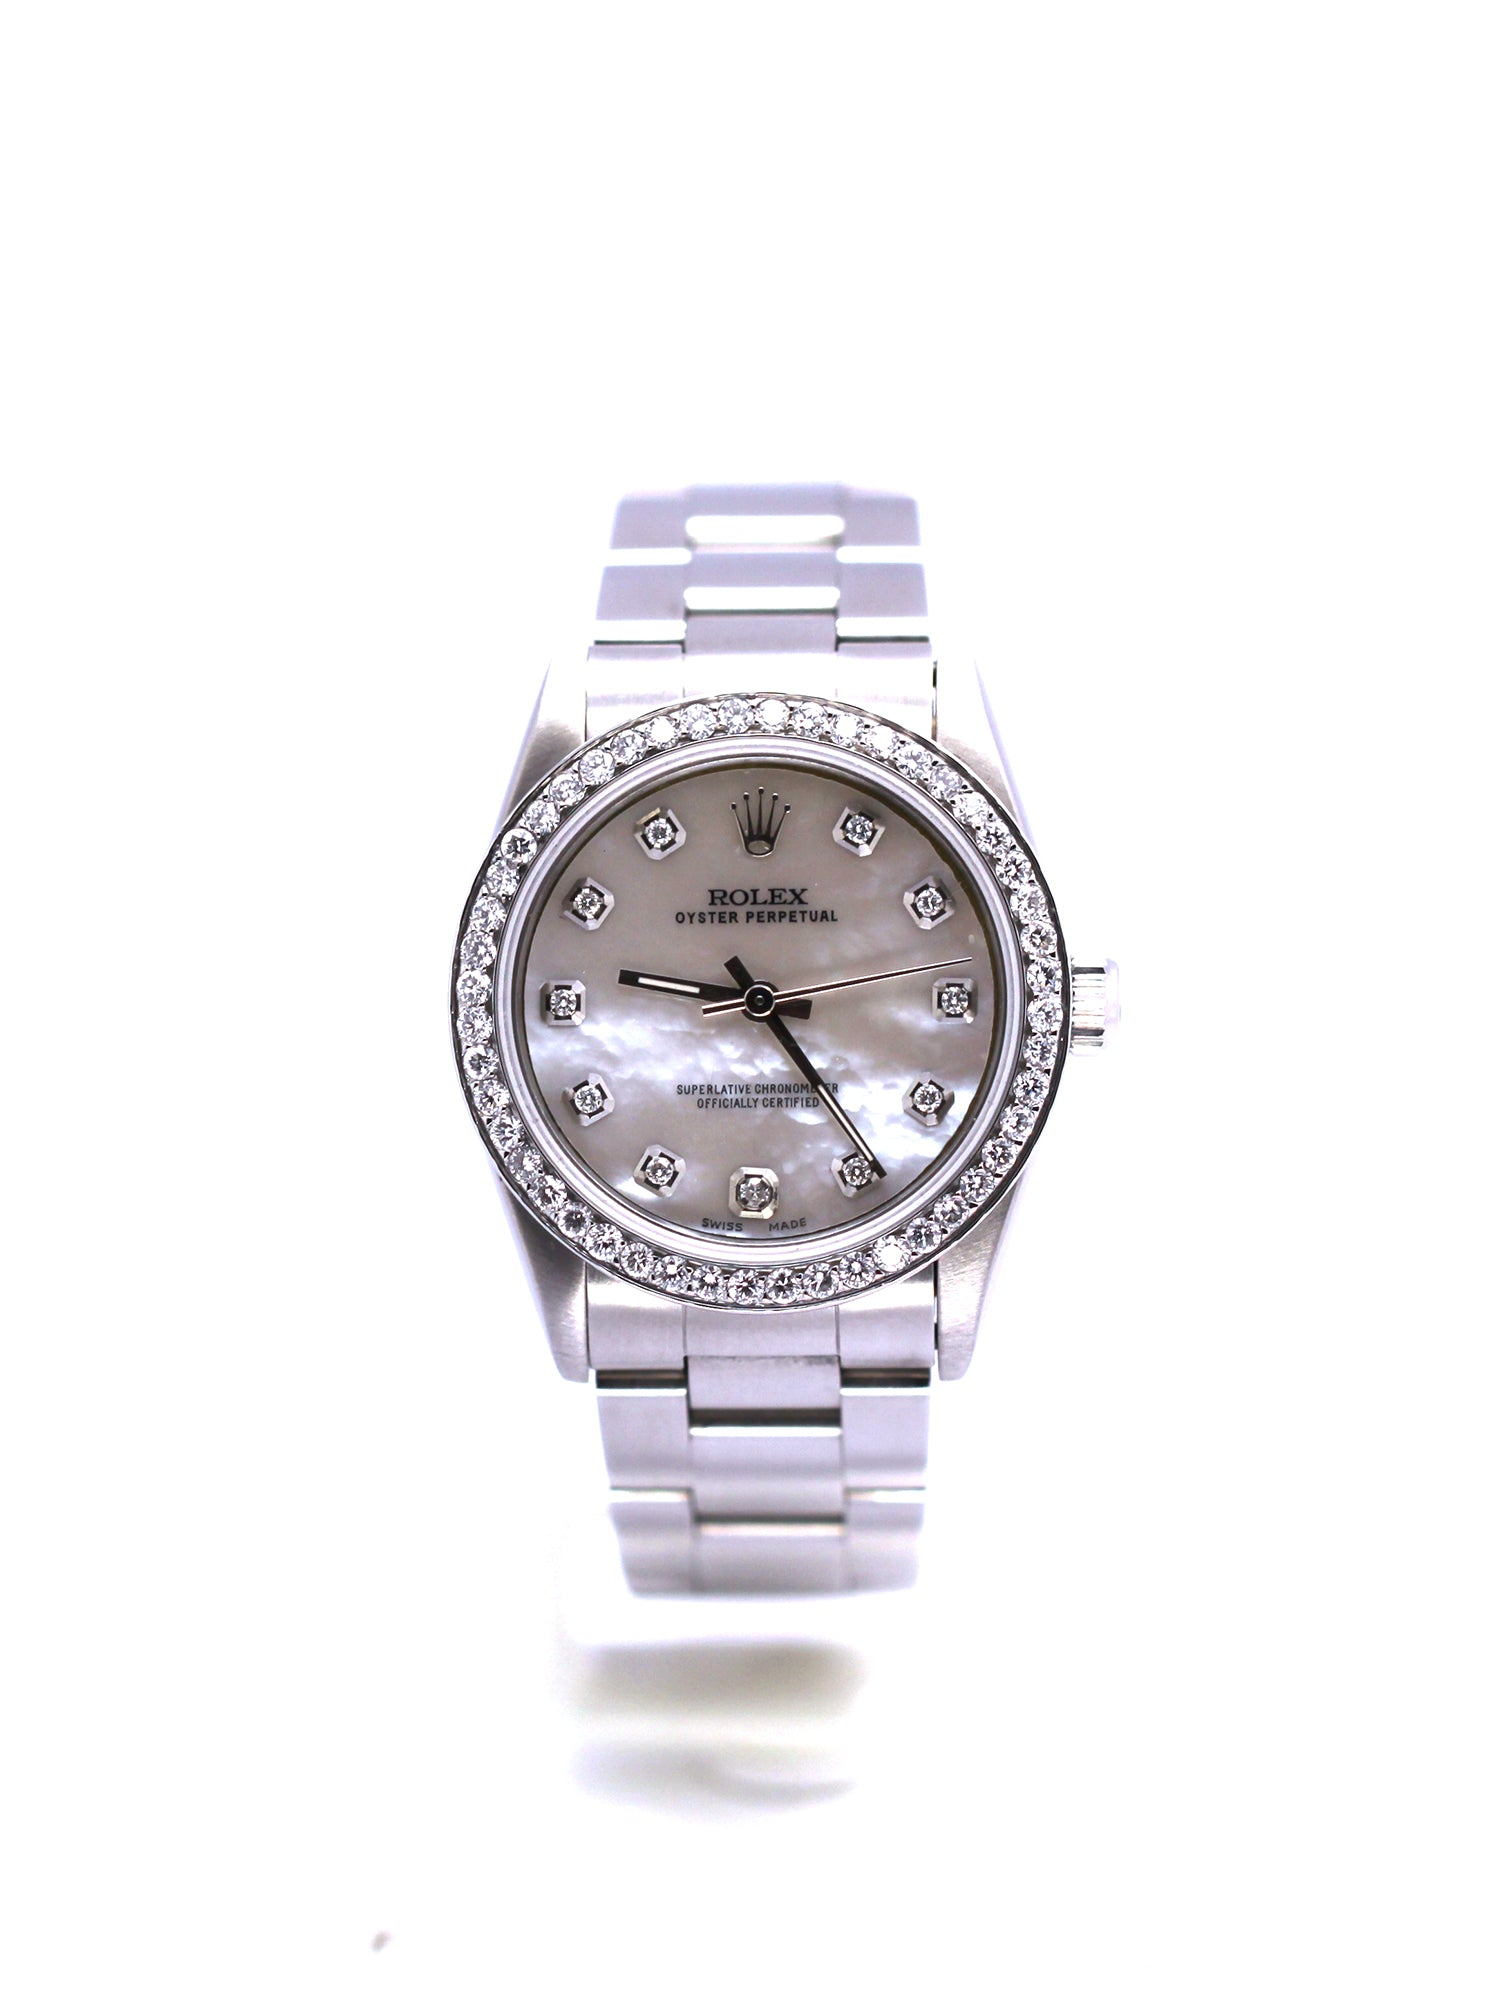 ROLEX OYSTER PERPETUAL 31 STAINLESS STEEL DIAMONDS